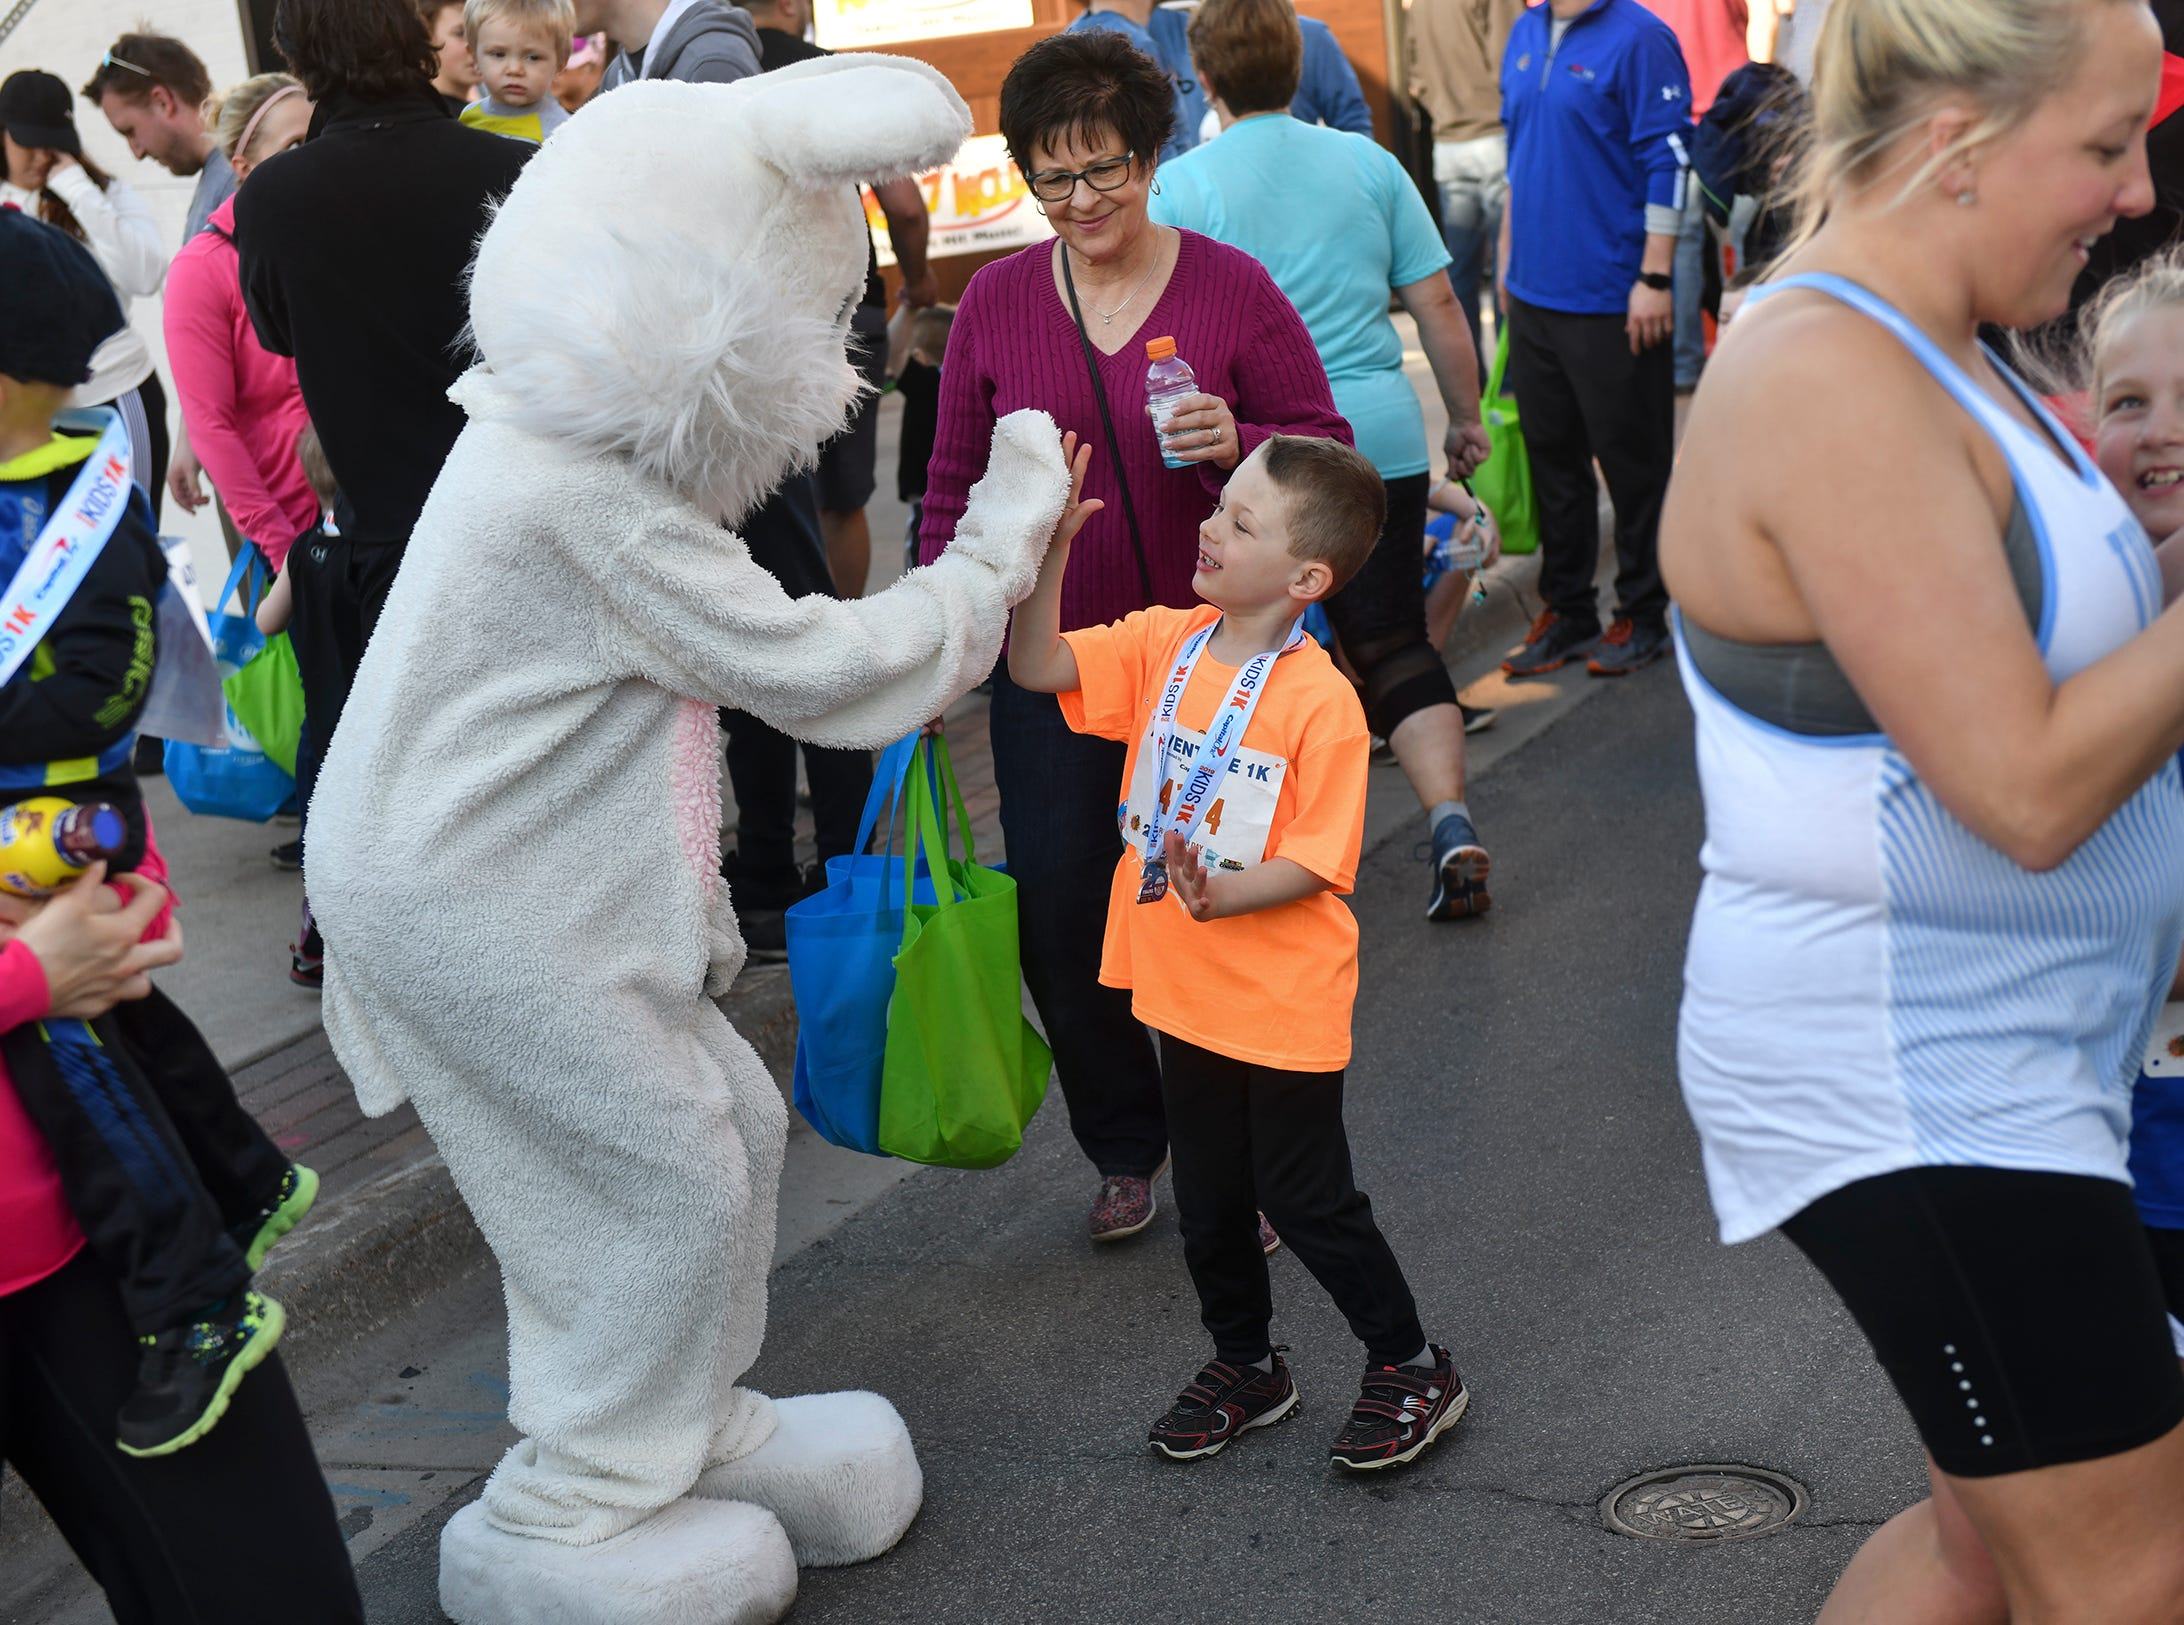 Runners get high-fives from local mascots at the finish line of the Kids Adventure 1K Friday in downtown St. Cloud.